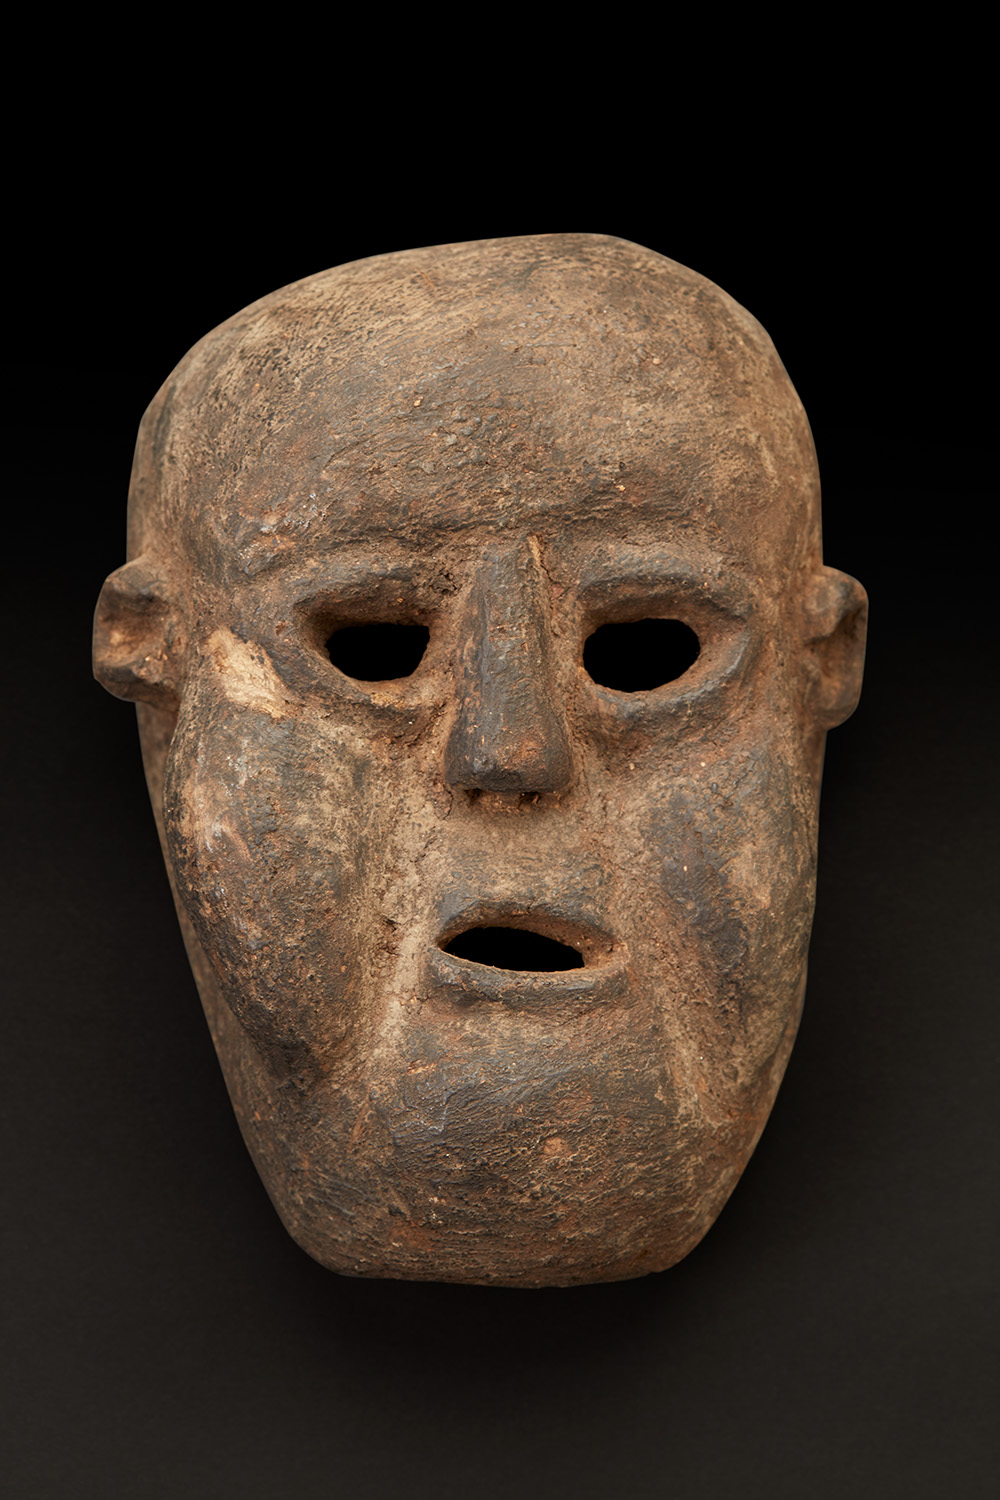 Masks    Nepal  , Early to mid 20th C. Cow dung, clay and plant material 8.5 x 6.5 x 3.5 inches 21.6 x 16.5 x 8.9 cm M 355